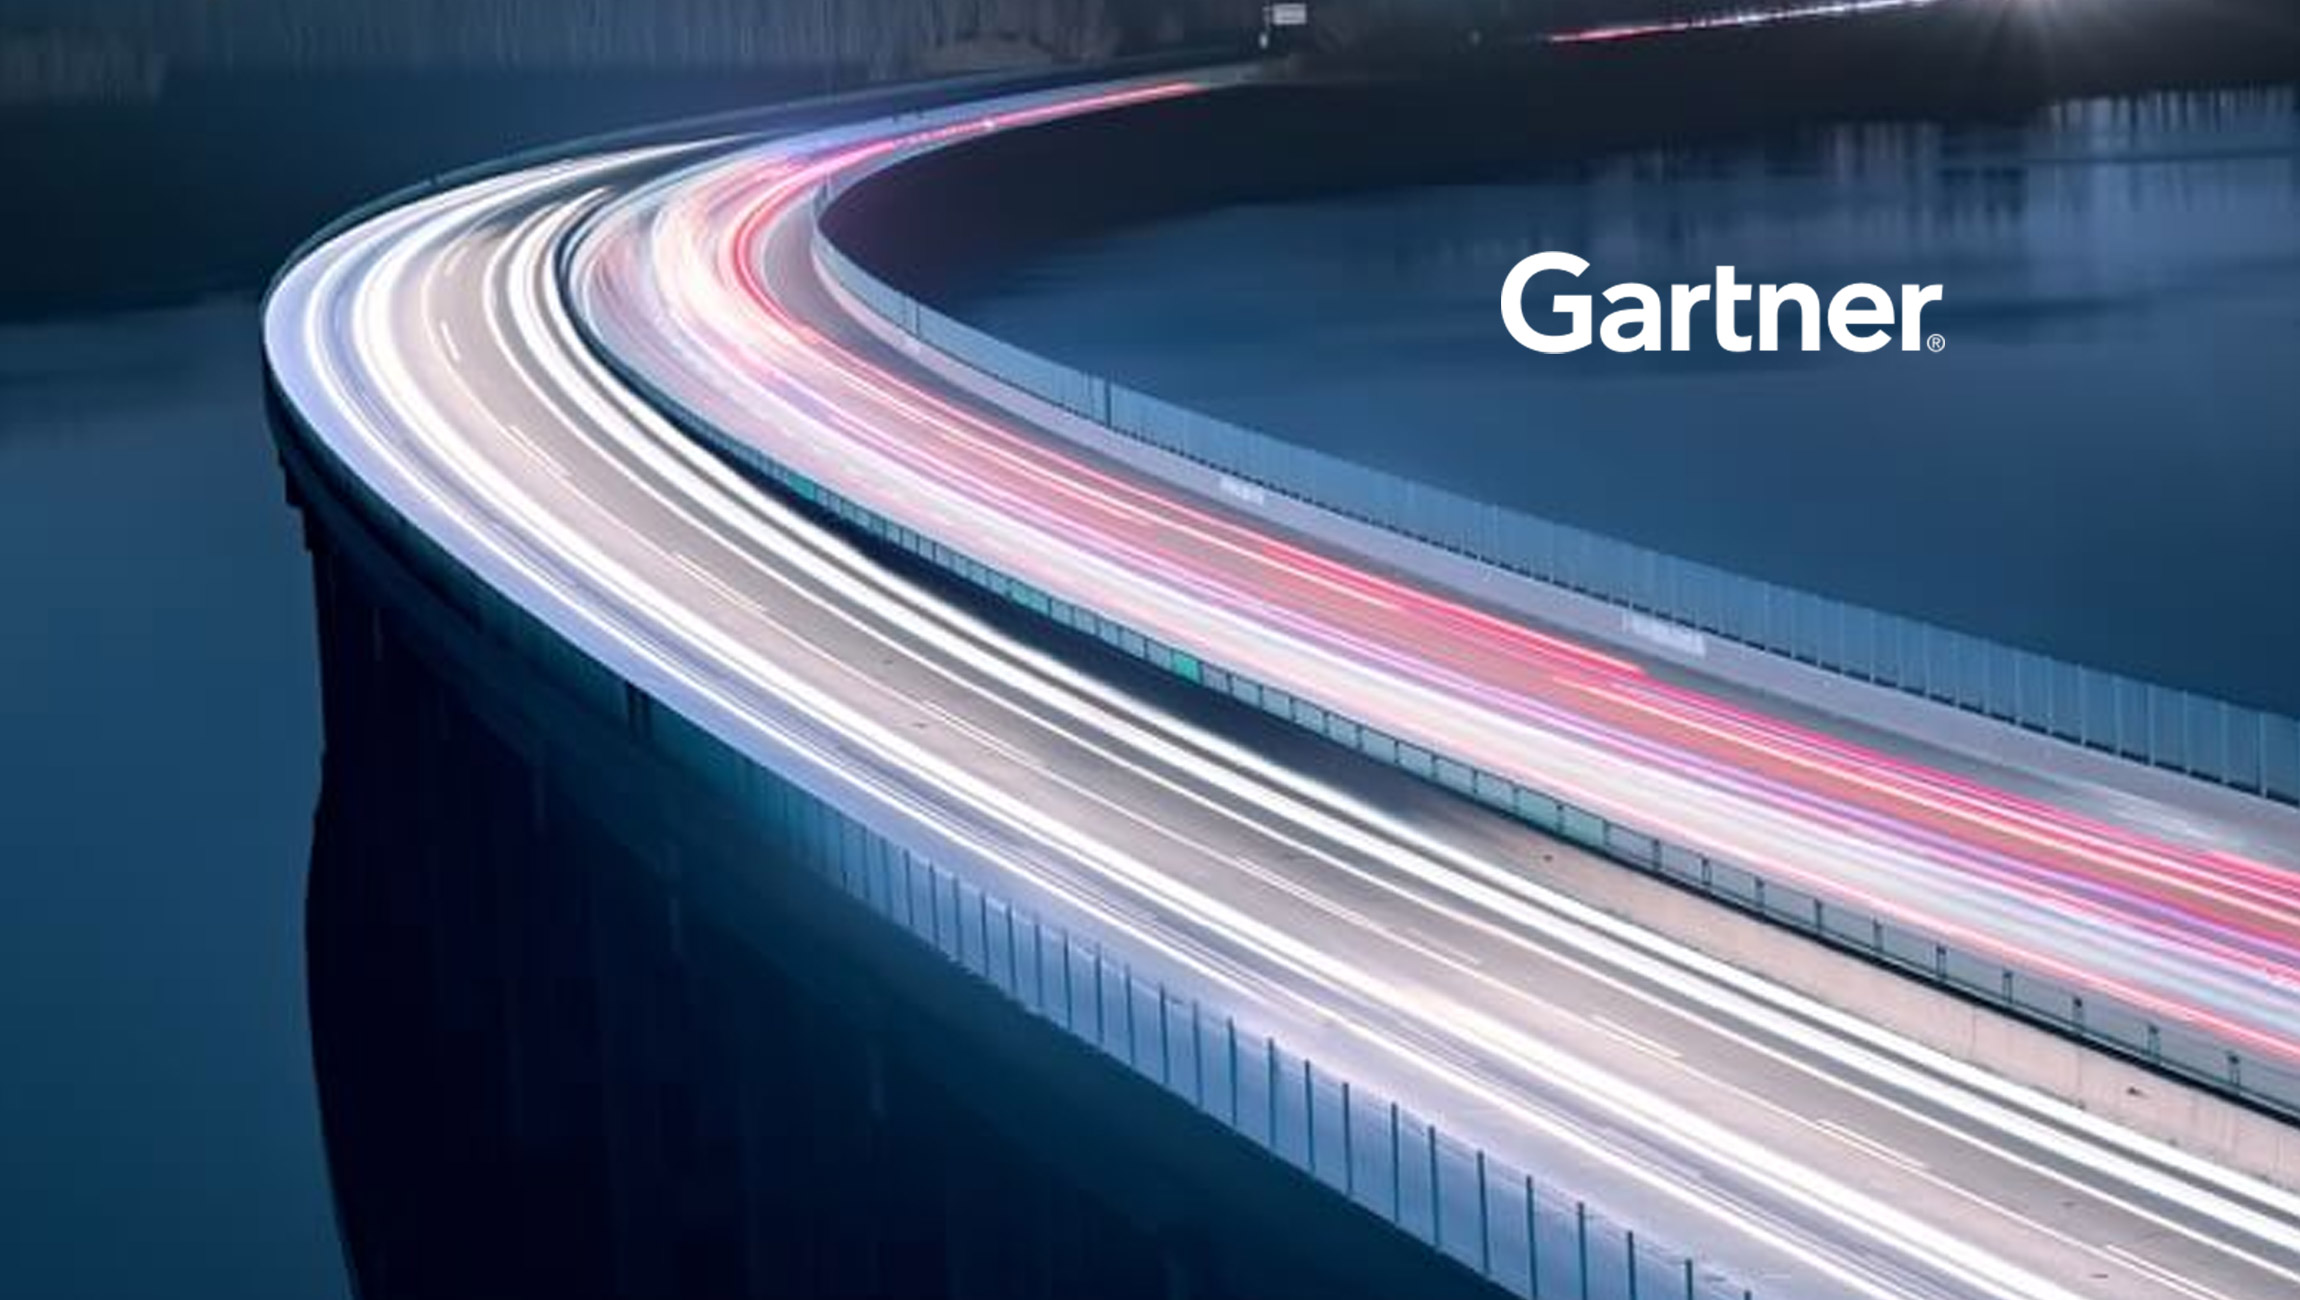 Gartner Says Marketers Must Focus on Helping Customers in Order to Remain Competitive Today